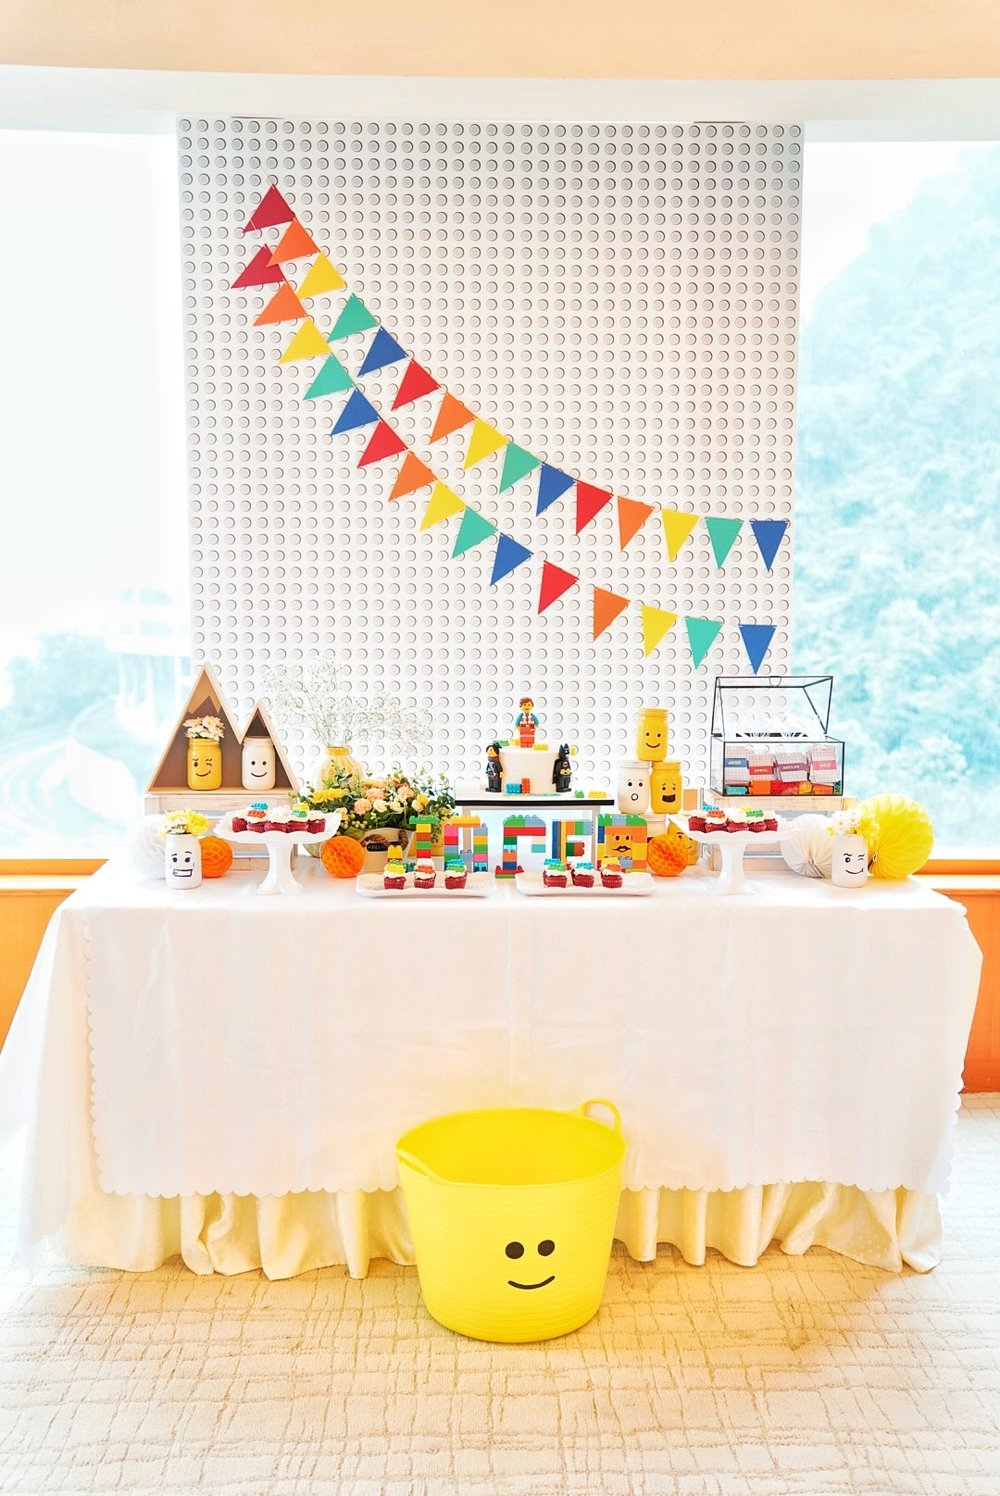 Eat, Sleep, Build, Repeat. - Jared loves Lego and we built this party especially with him in mind, from the colors to the cake and decor.